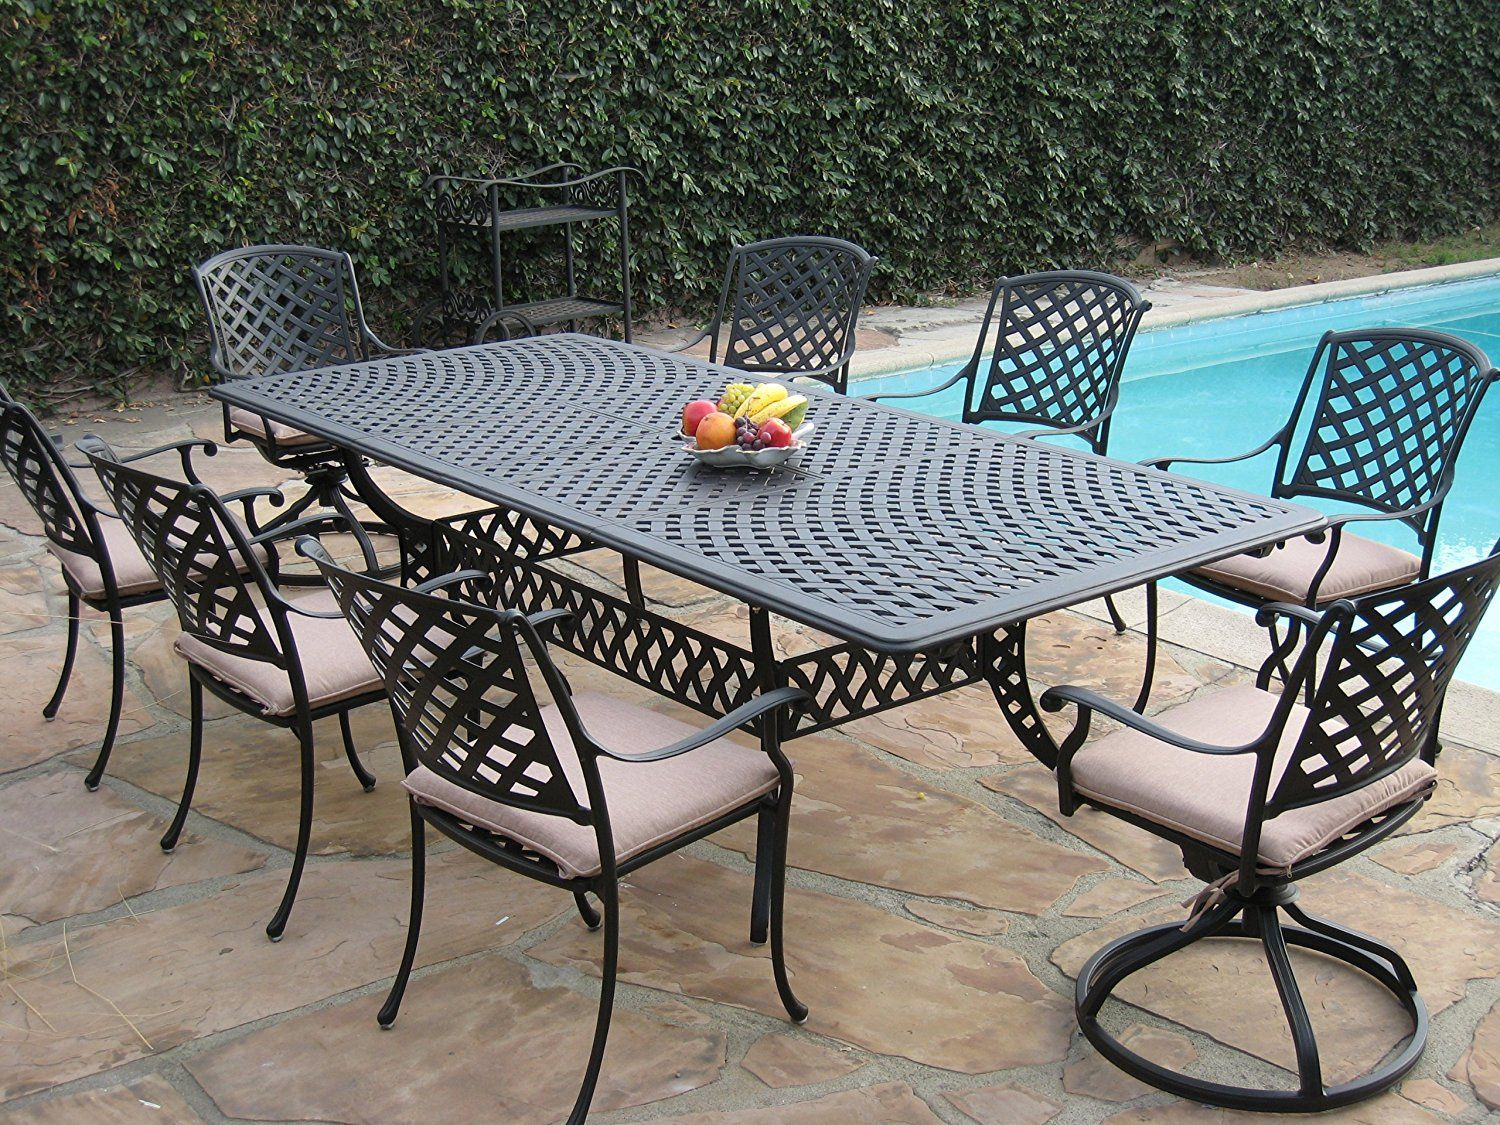 patio extensions 2. Cast Aluminum Outdoor Patio Furniture 9 Piece Extension Dining Table Set With 2 Swivel Rockers * Details Can Be Found By Clicking On The Image. Extensions O